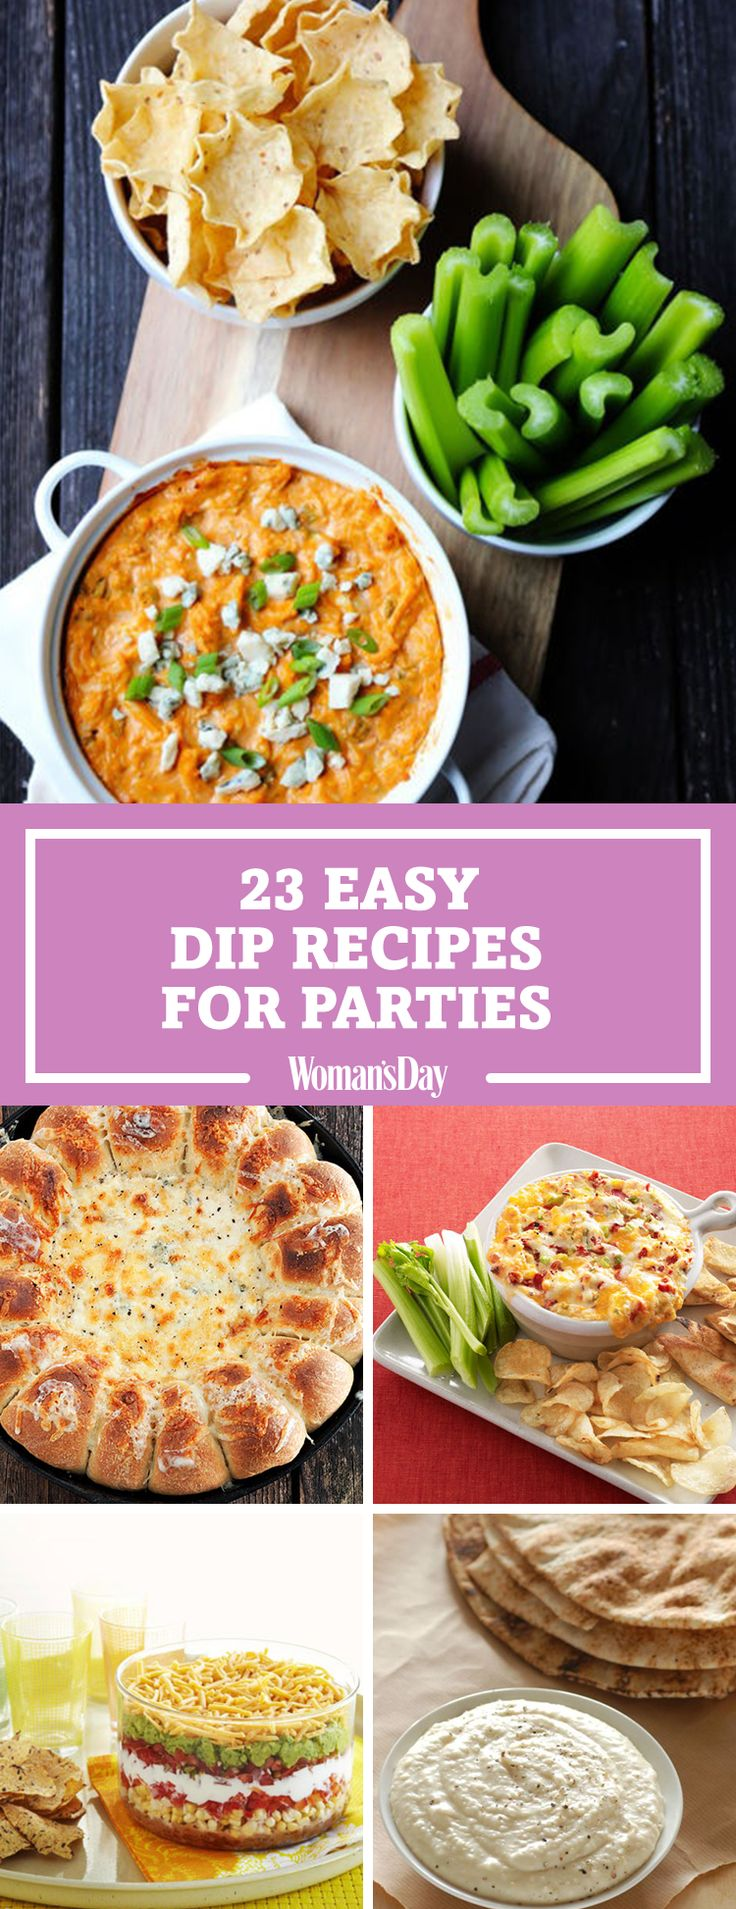 These dip recipes will be a hit at your next fall tailgate party or Thanksgiving dinner. Guests will love the skinny buffalo chicken dip and the warm skillet bread and artichoke spinach dip.